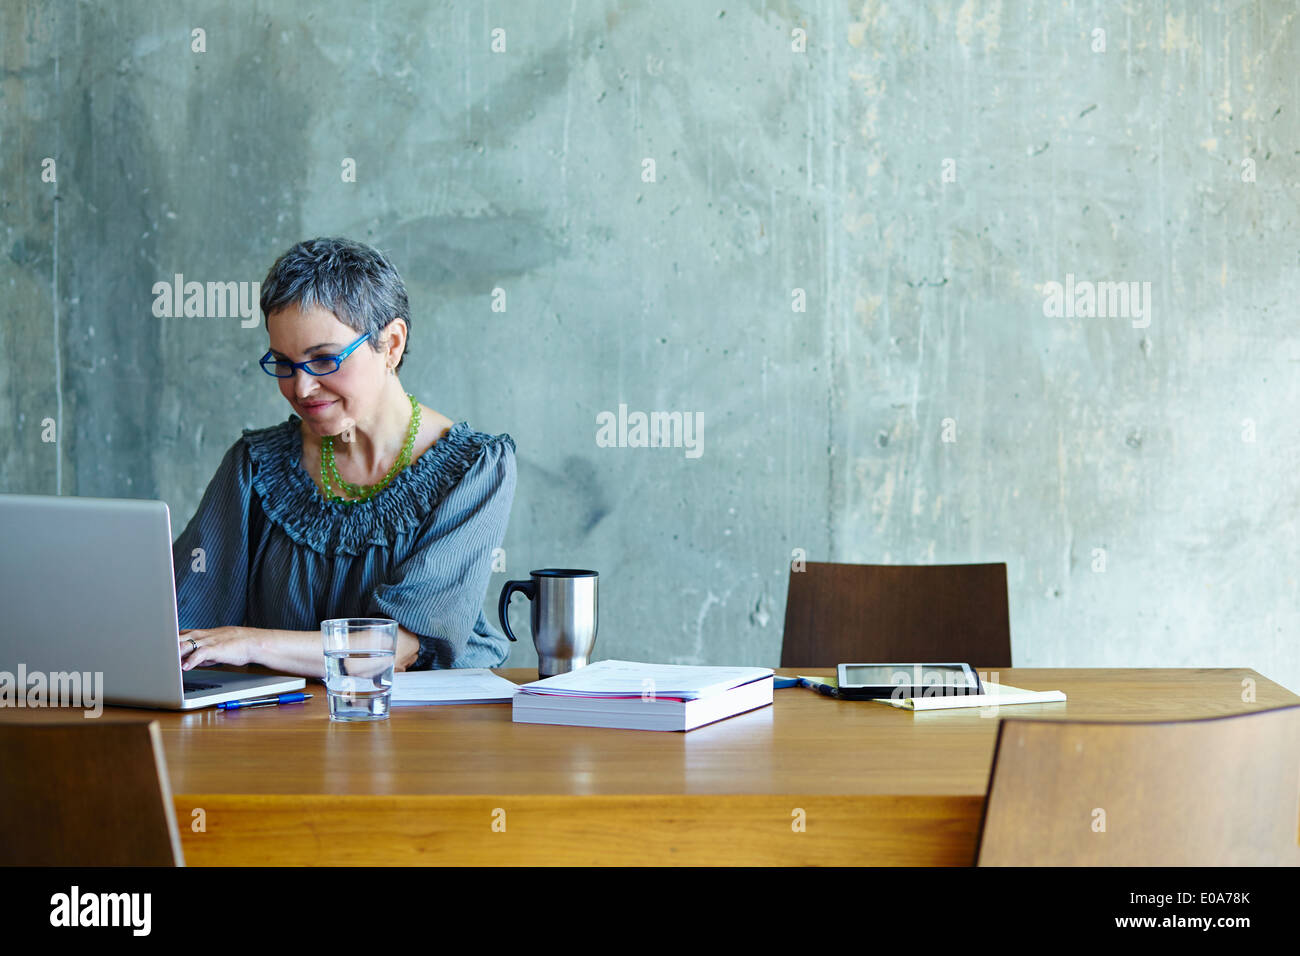 Mature businesswoman at conference table working on laptop - Stock Image